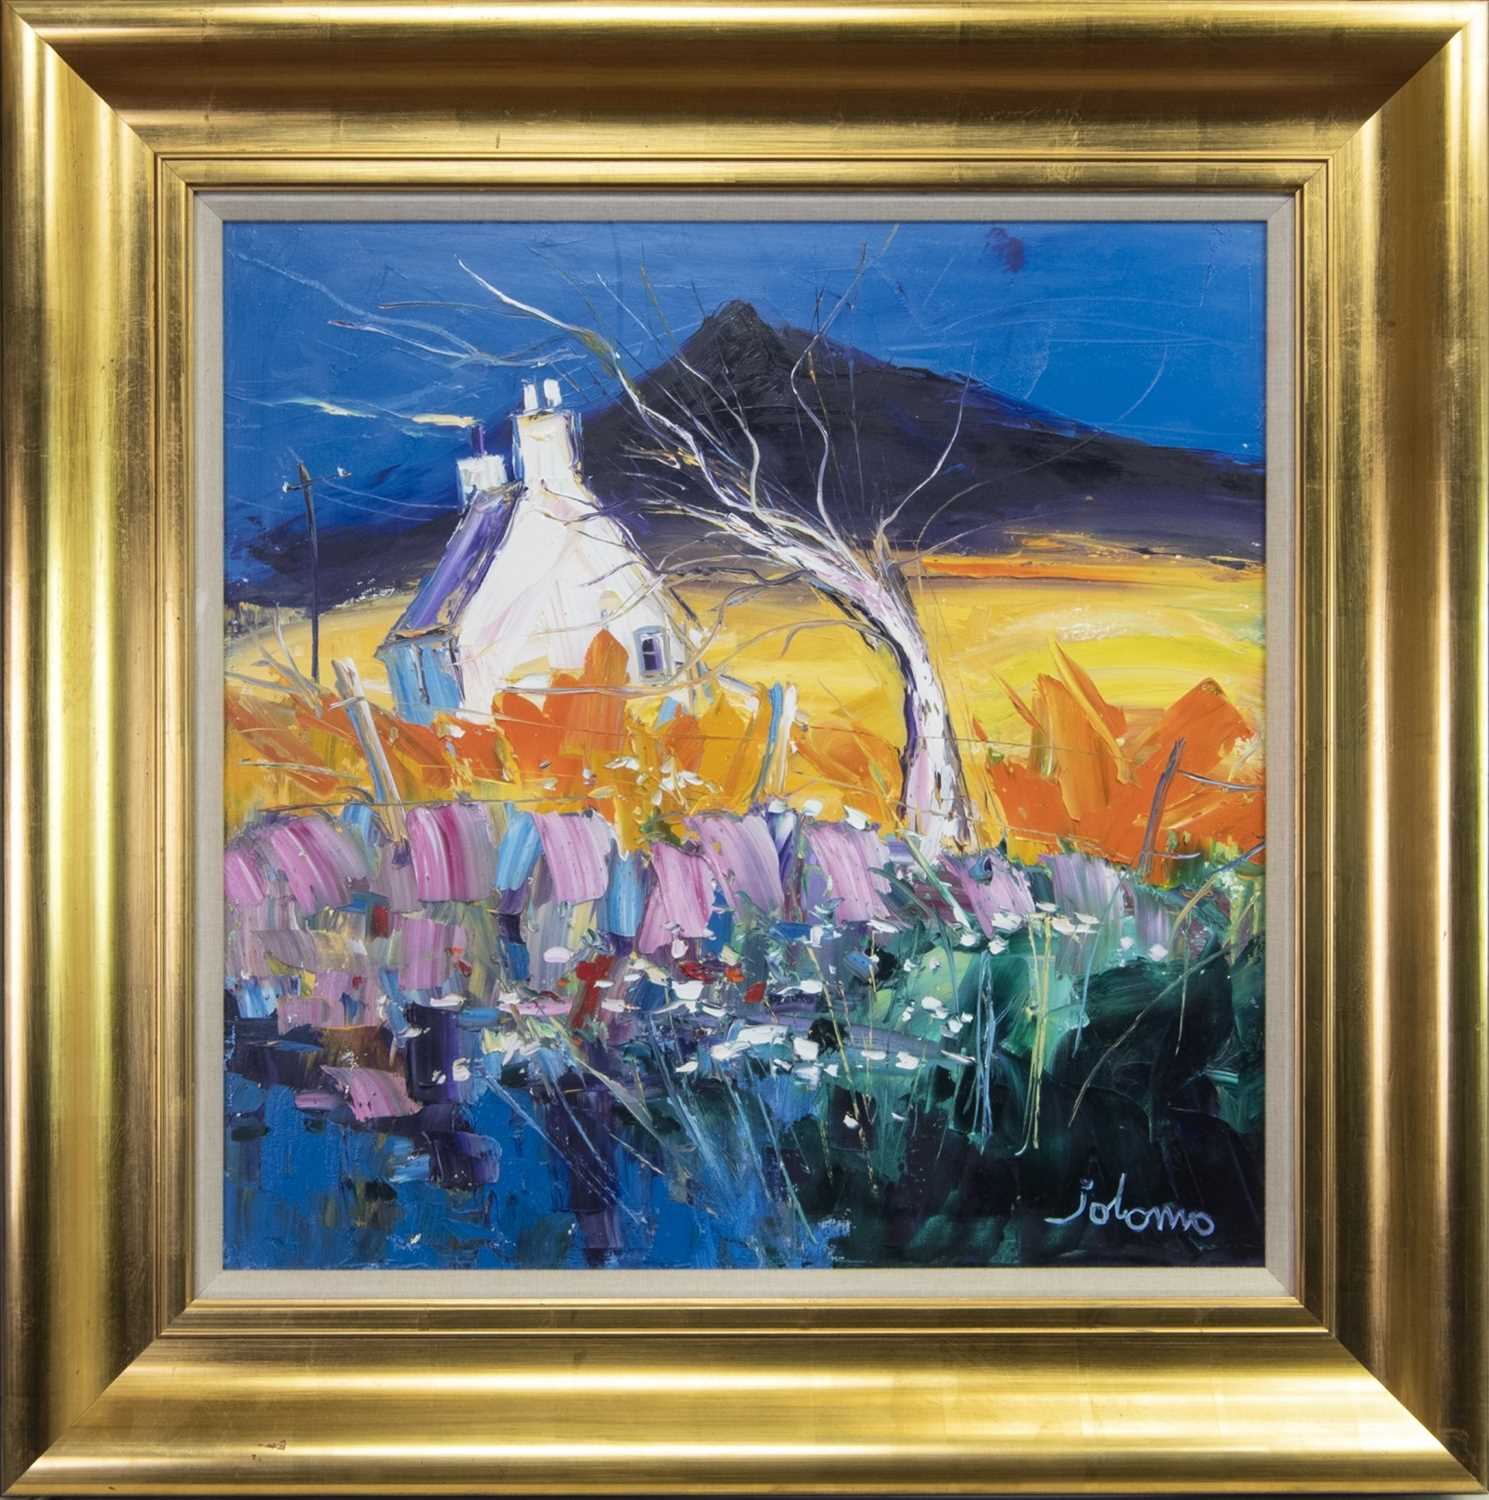 Lot 728 - CROFT AND TREE, BEN MORE, MULL, AN OIL BY JOLOMO